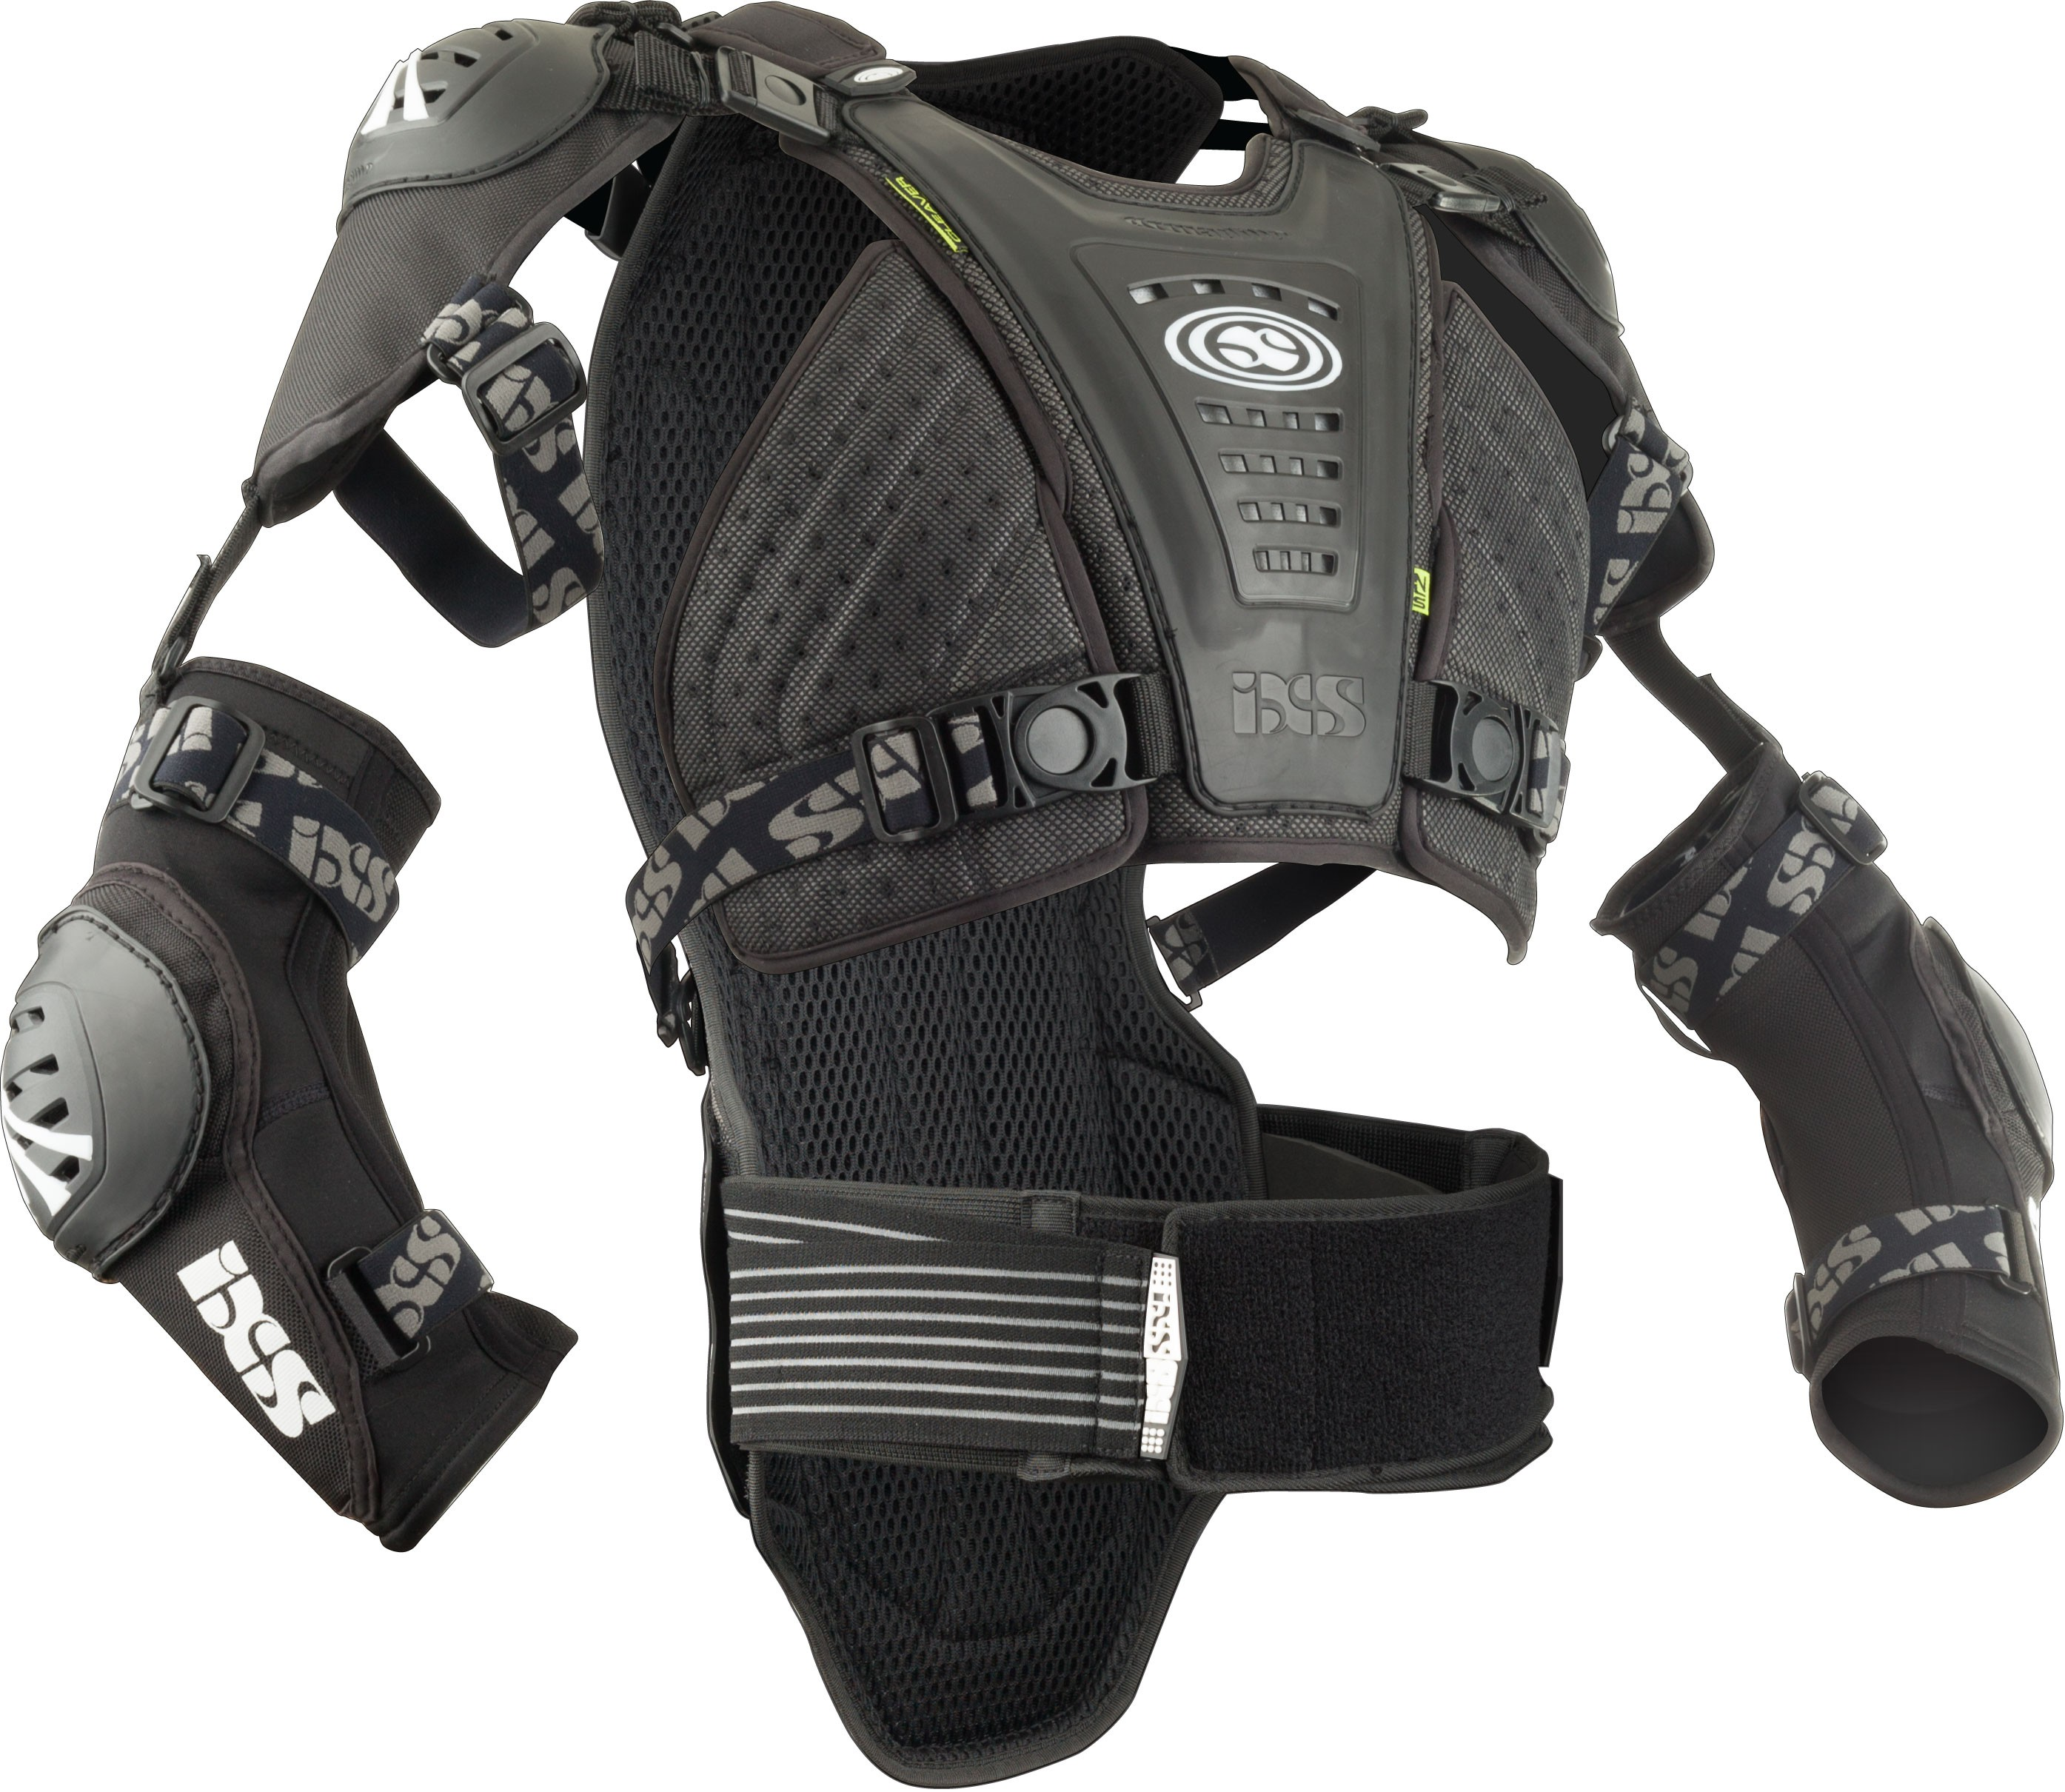 Ixs Cleaver Body Armor First Look 43ride Bike Mag